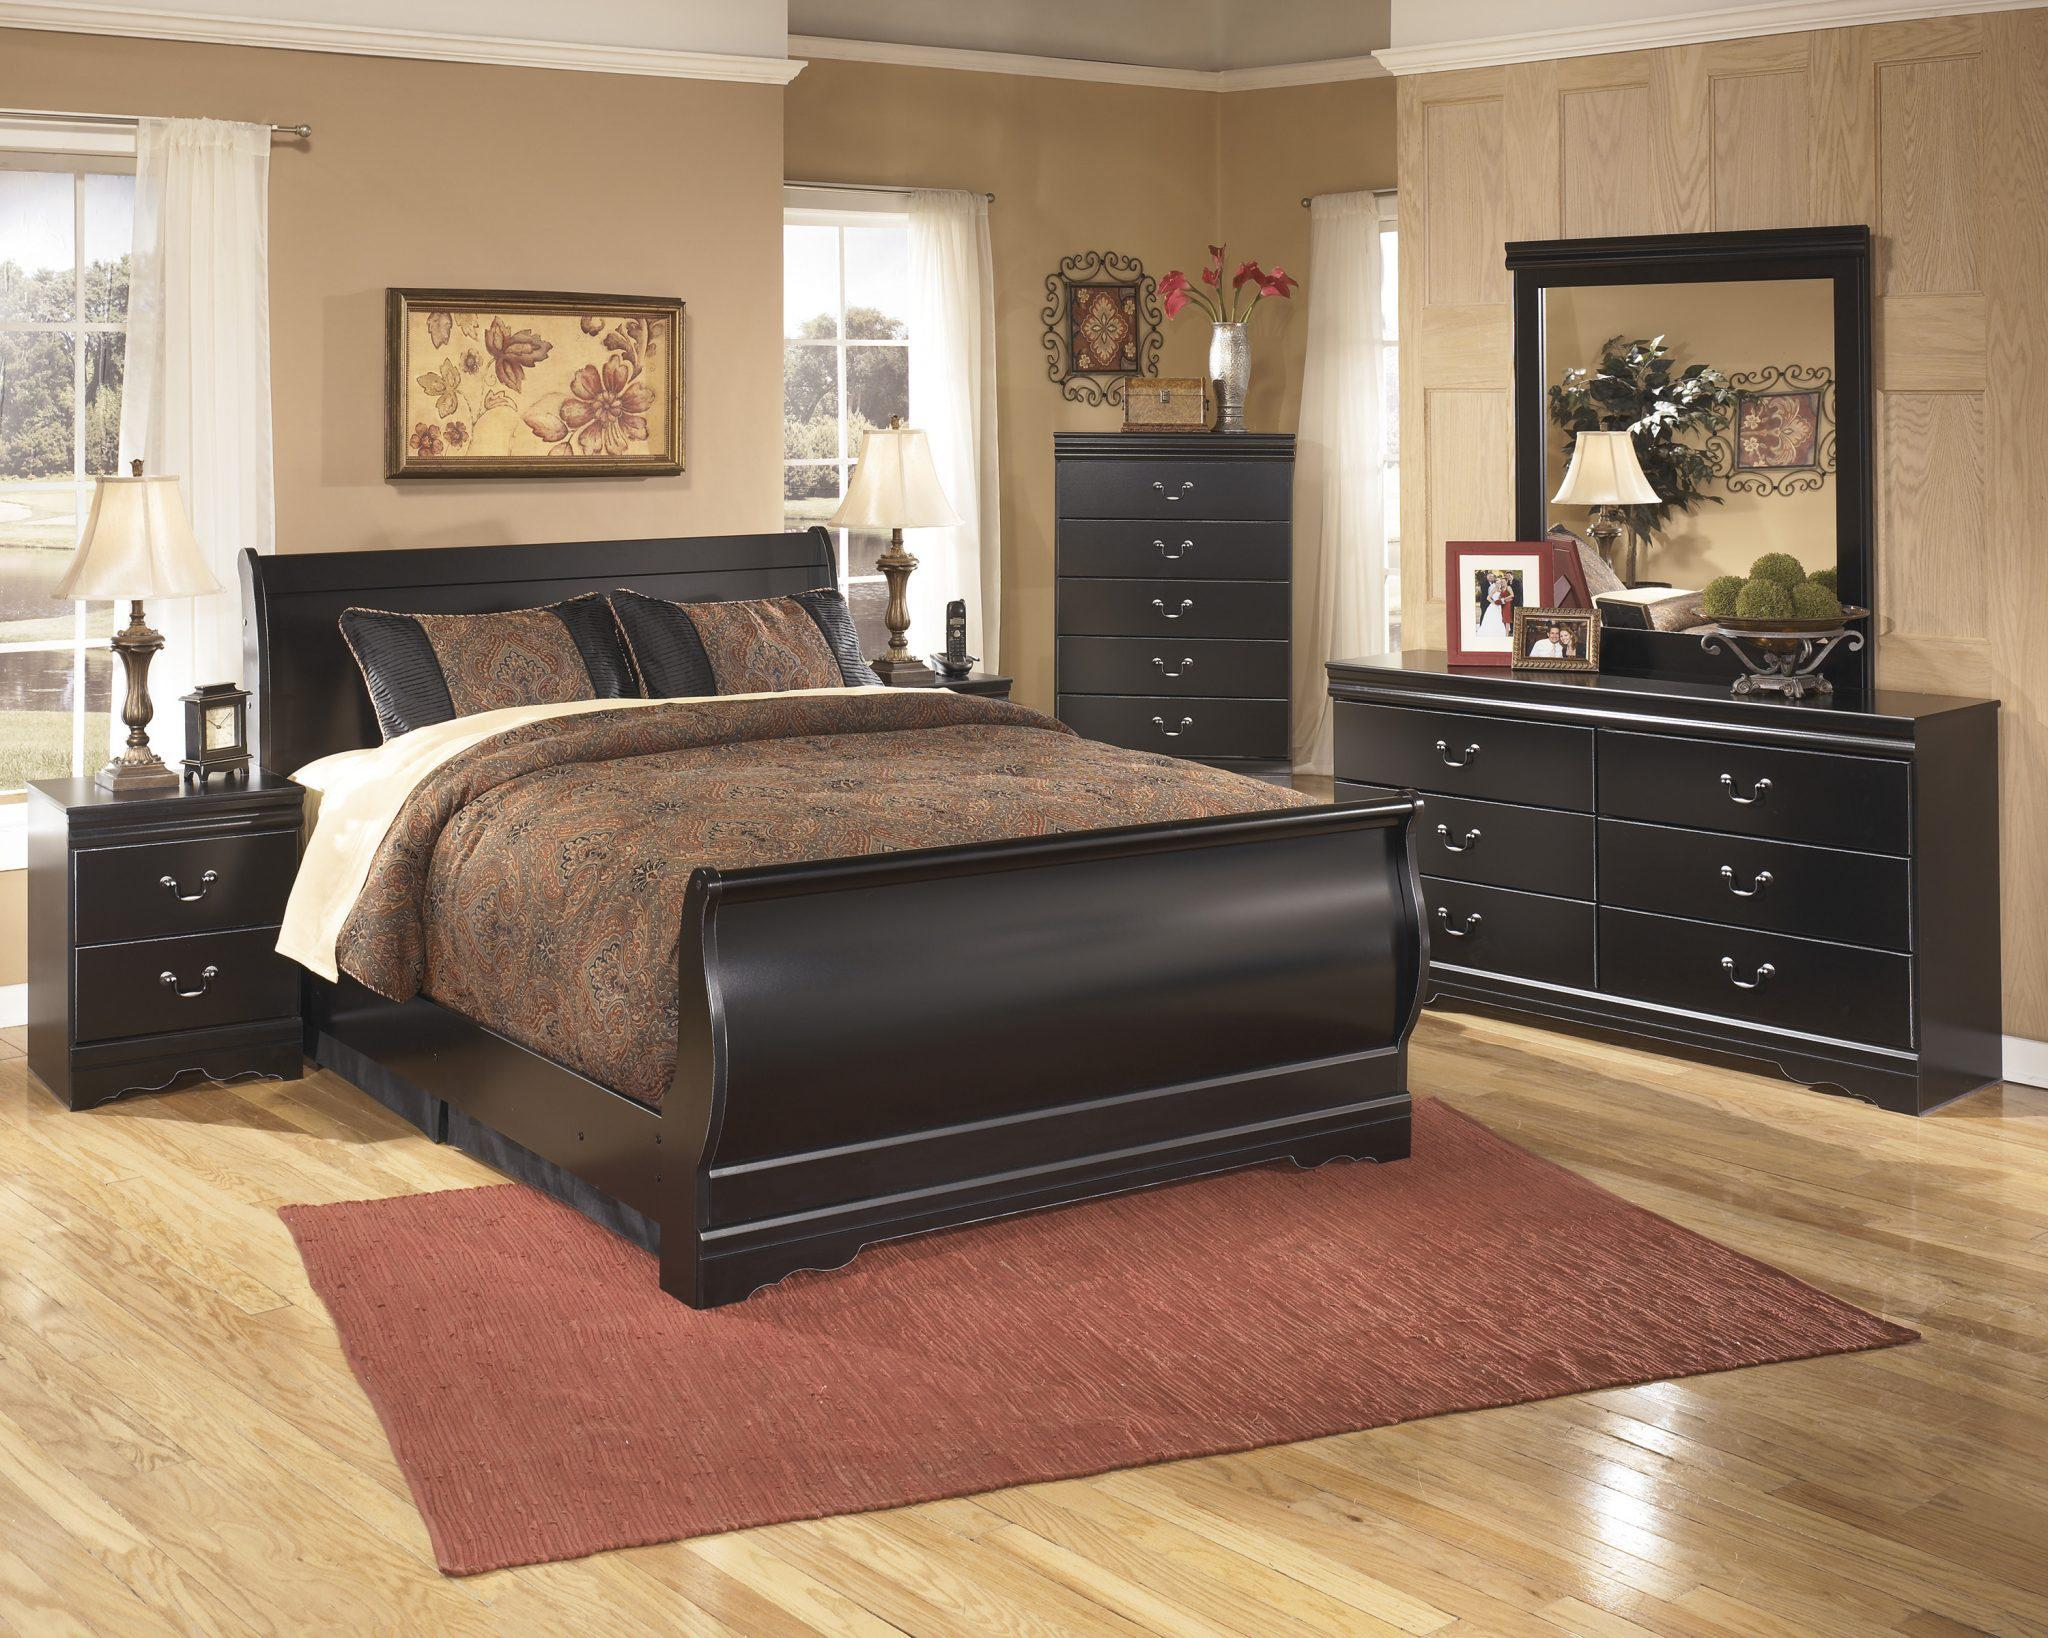 Ashley Sleigh Bedroom Set